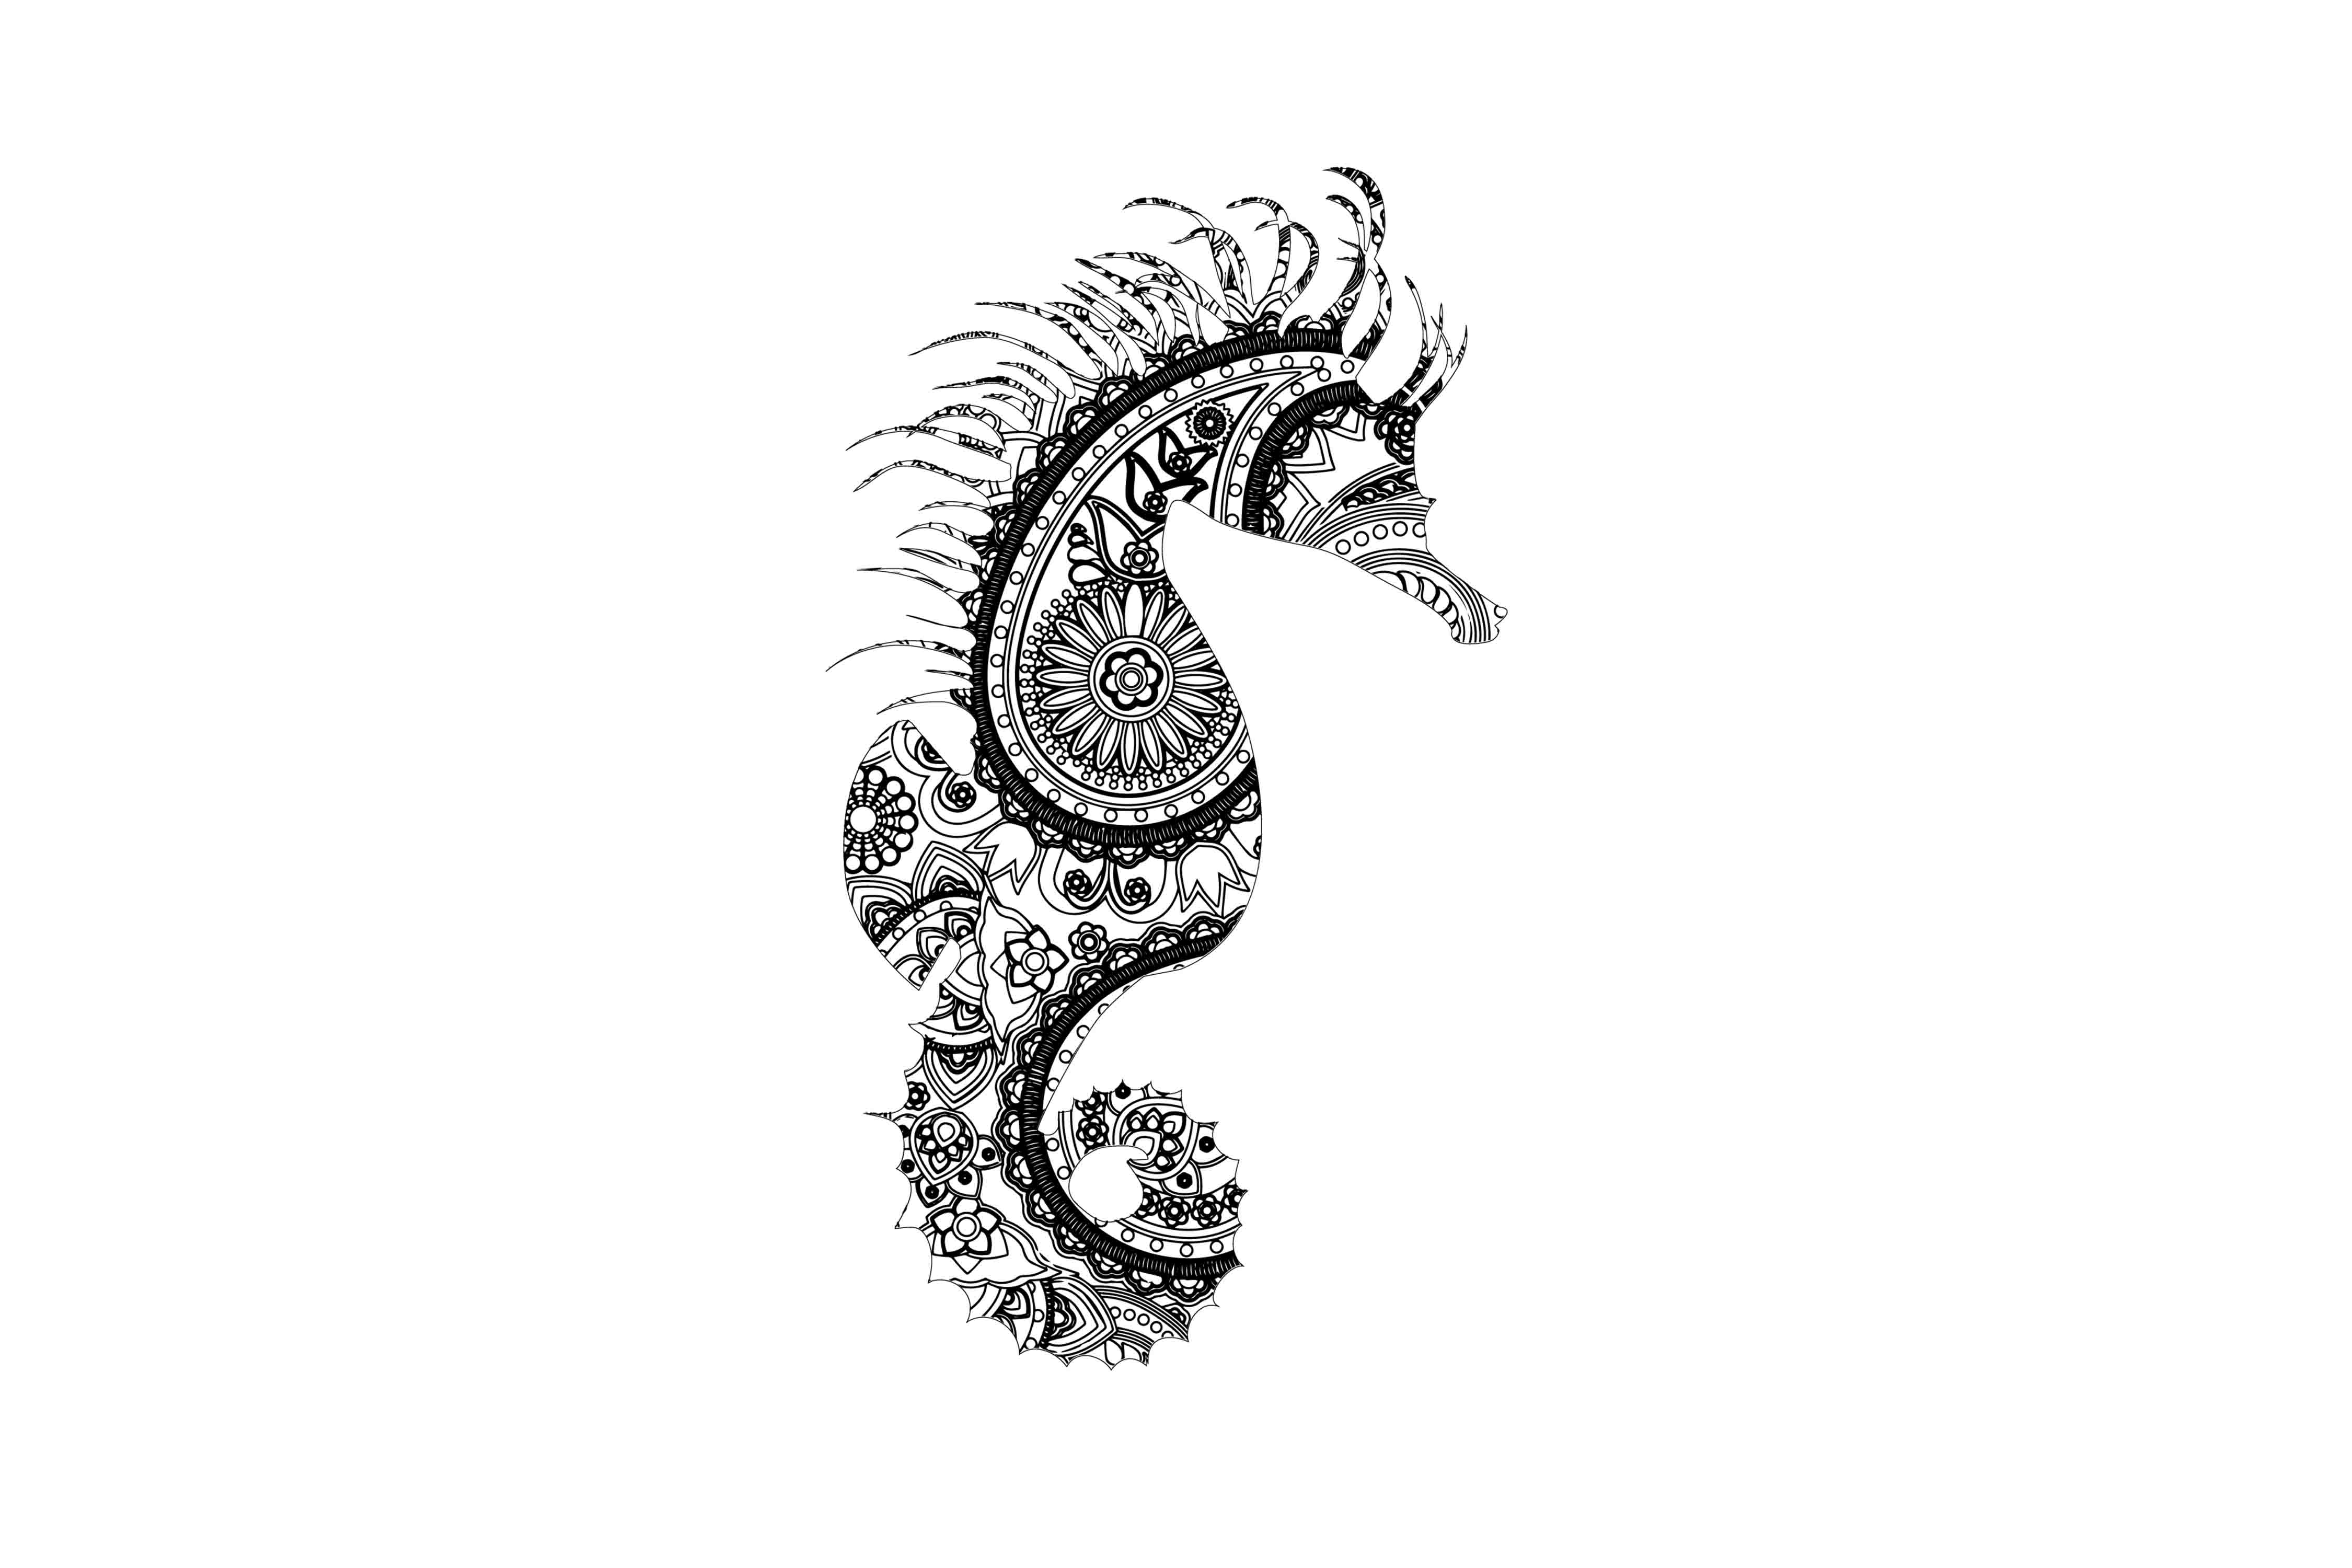 Mandala Seahorse SVG Grafik Illustrationen von twelvepapers